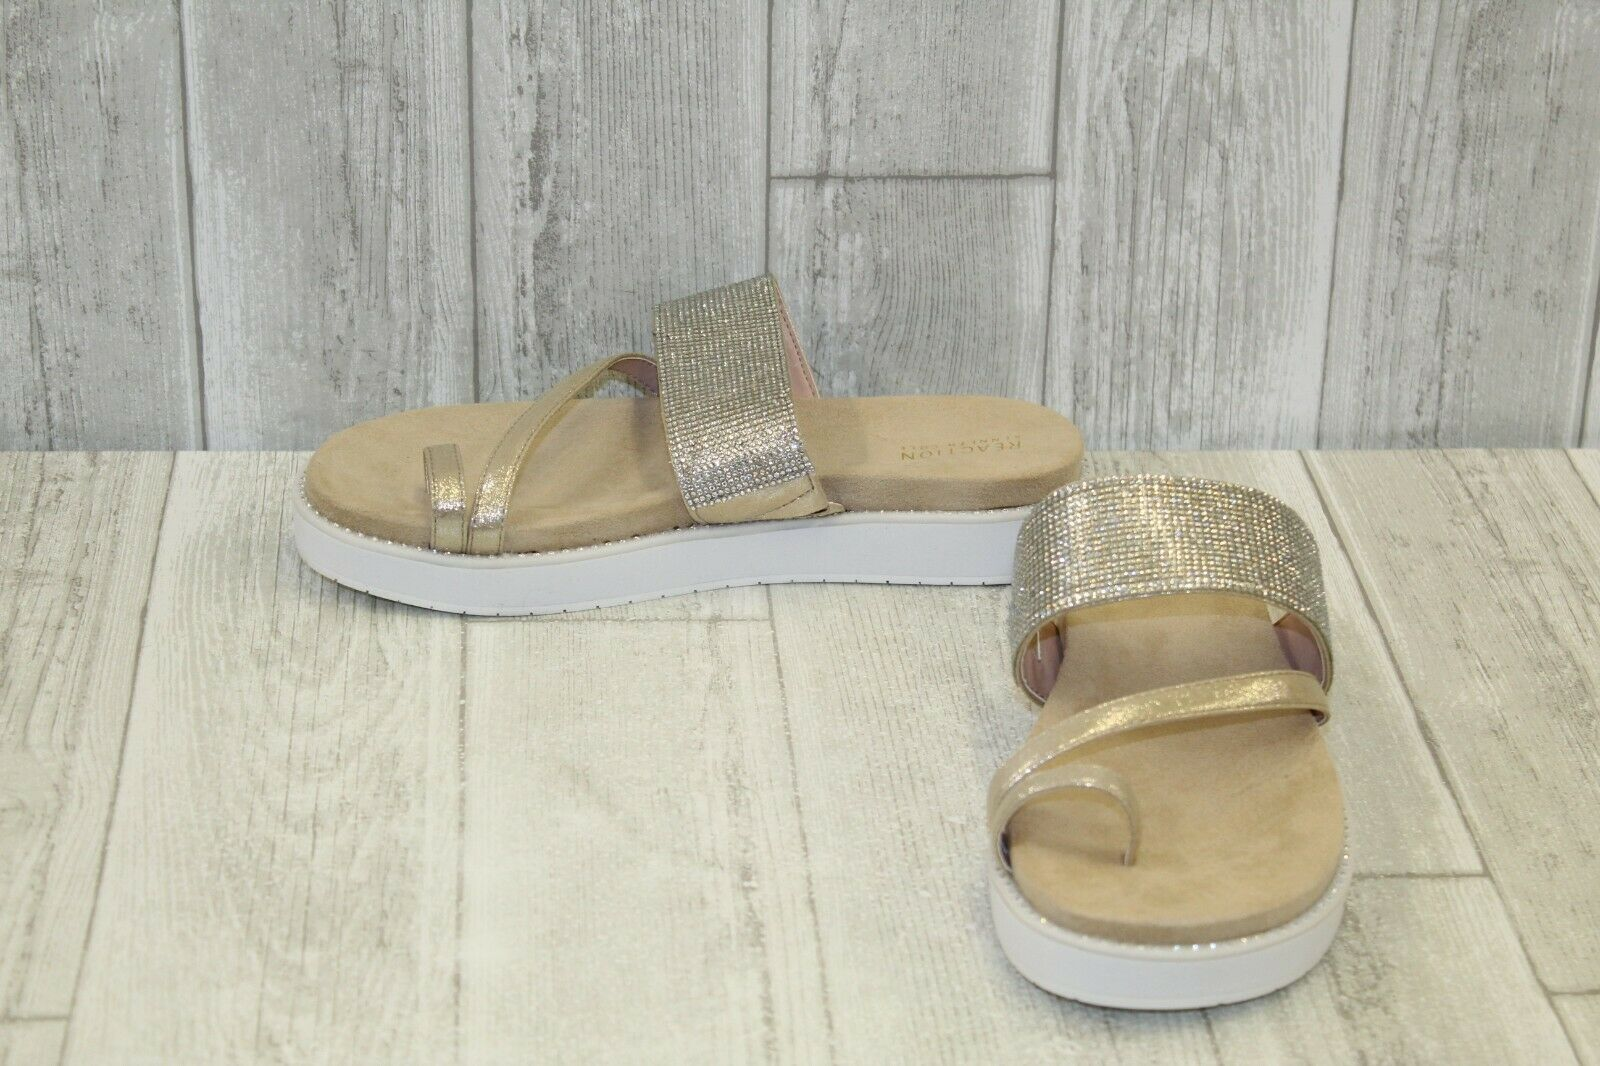 Kenneth Cole Reaction Slam Shot Sandals, Women's Size 10M, Soft gold NEW